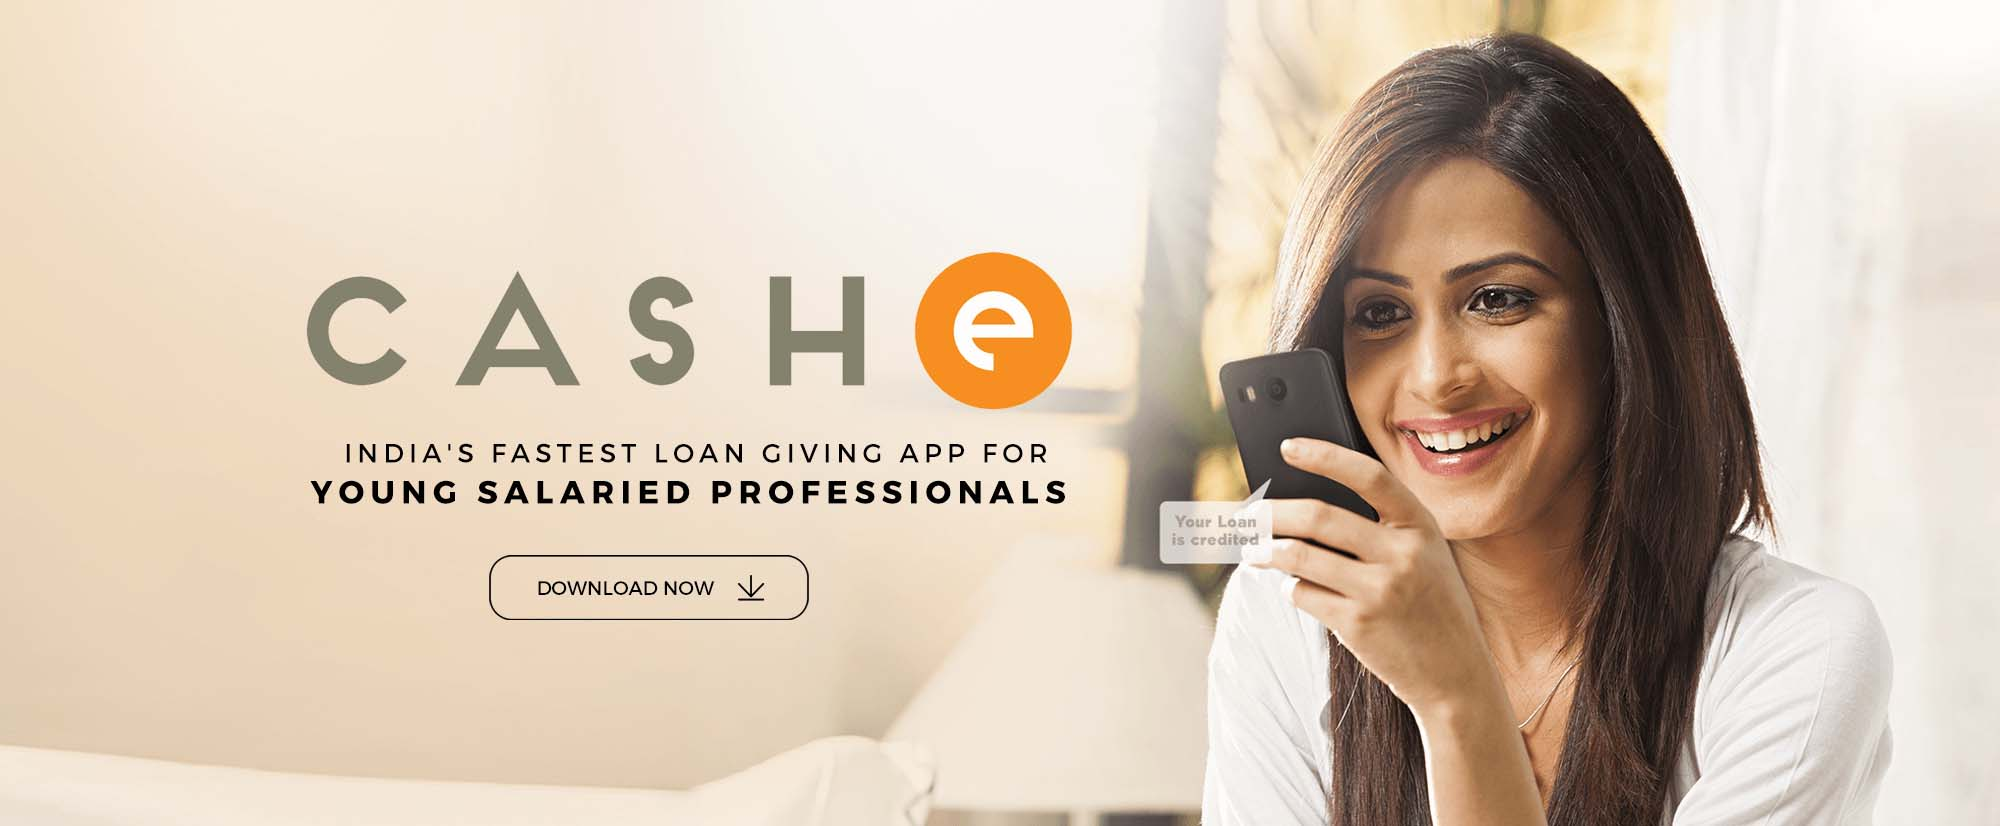 CASHe - Instant Personal Loan